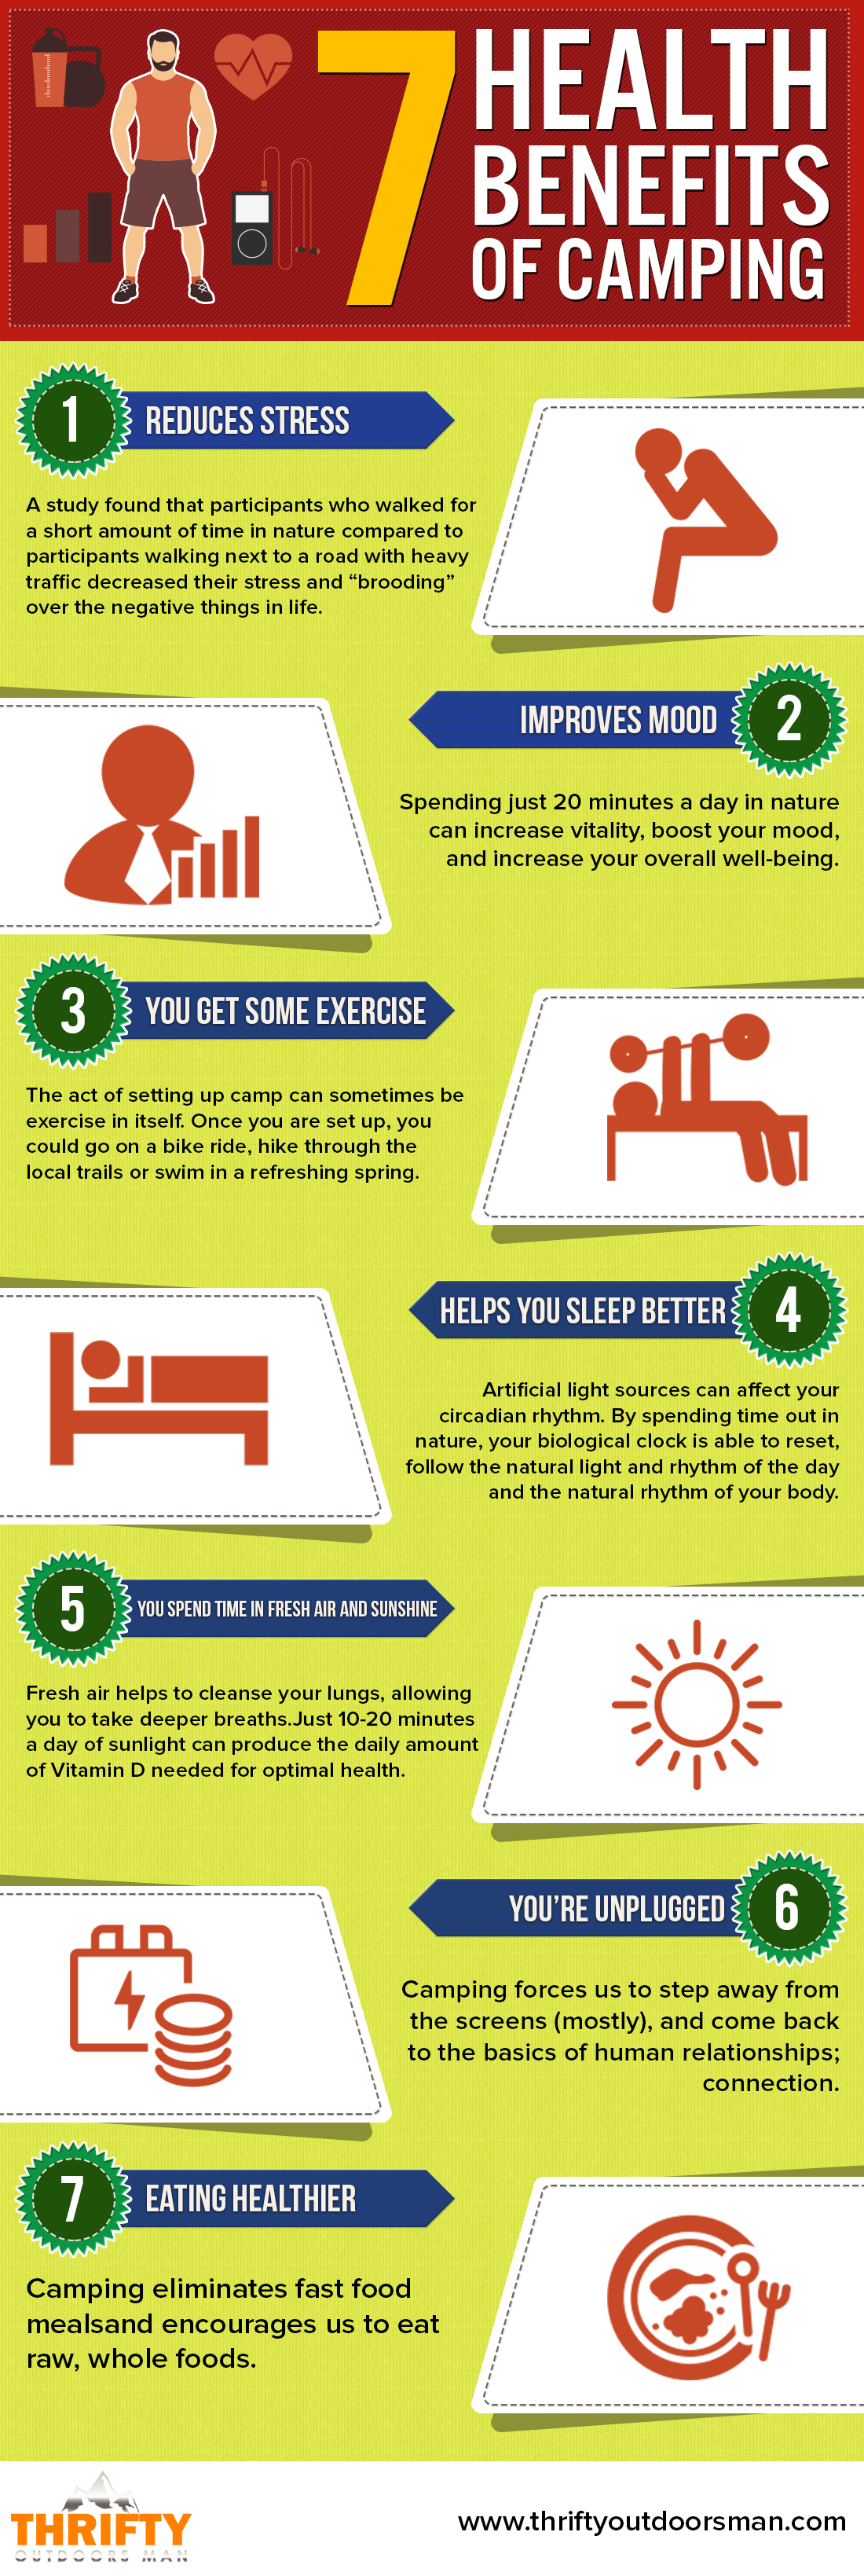 7 health benefits of camping